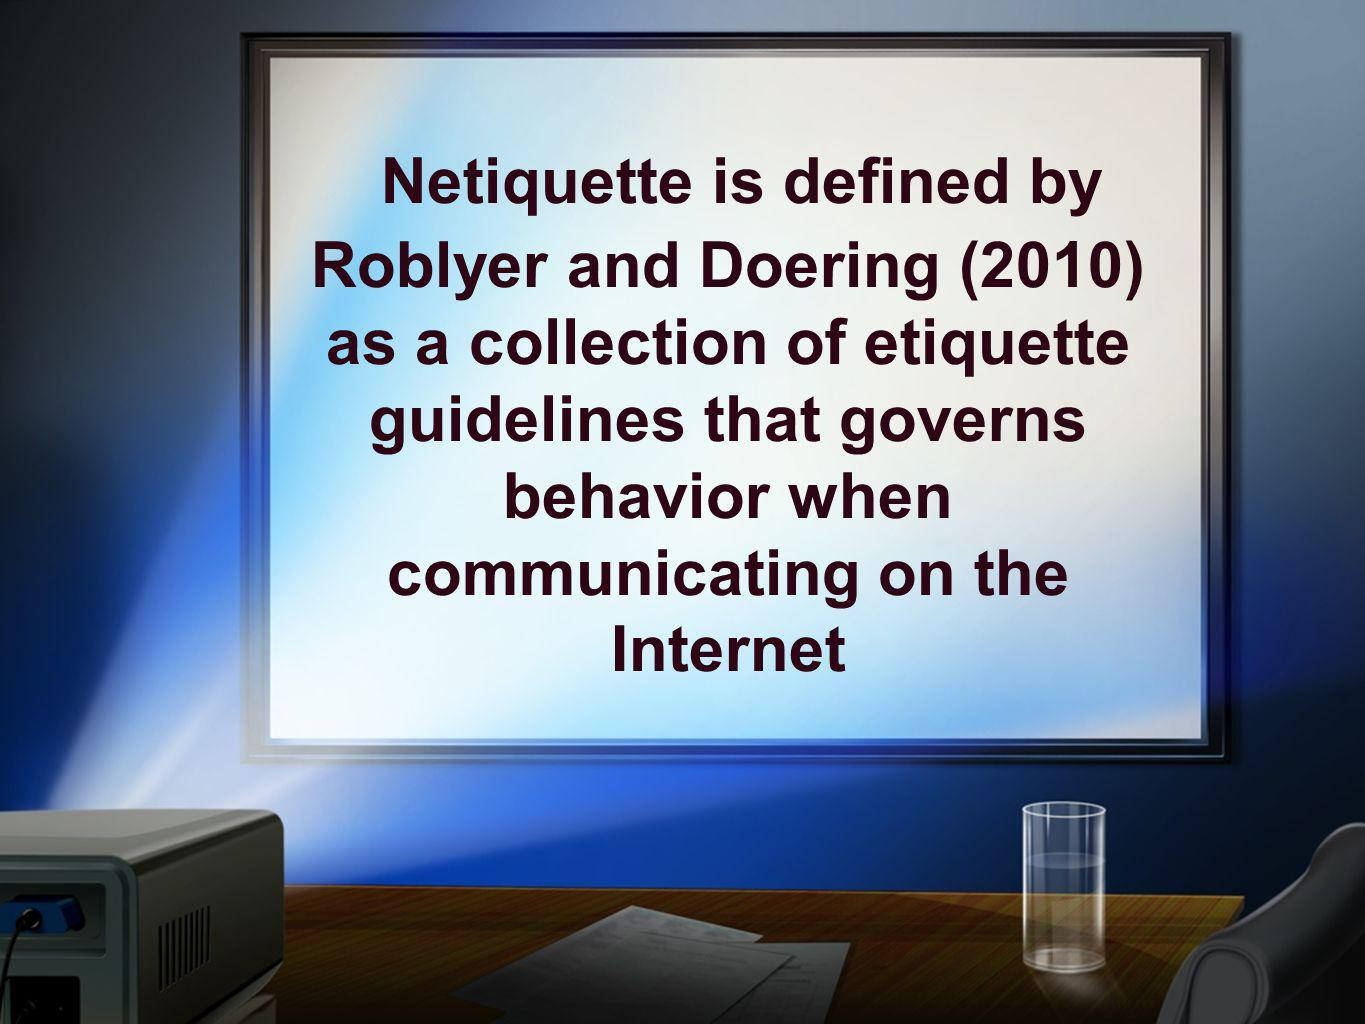 Netiquette is defined by Roblyer and Doering (2010) as a collection of etiquette guidelines that governs behavior when communicating on the Internet